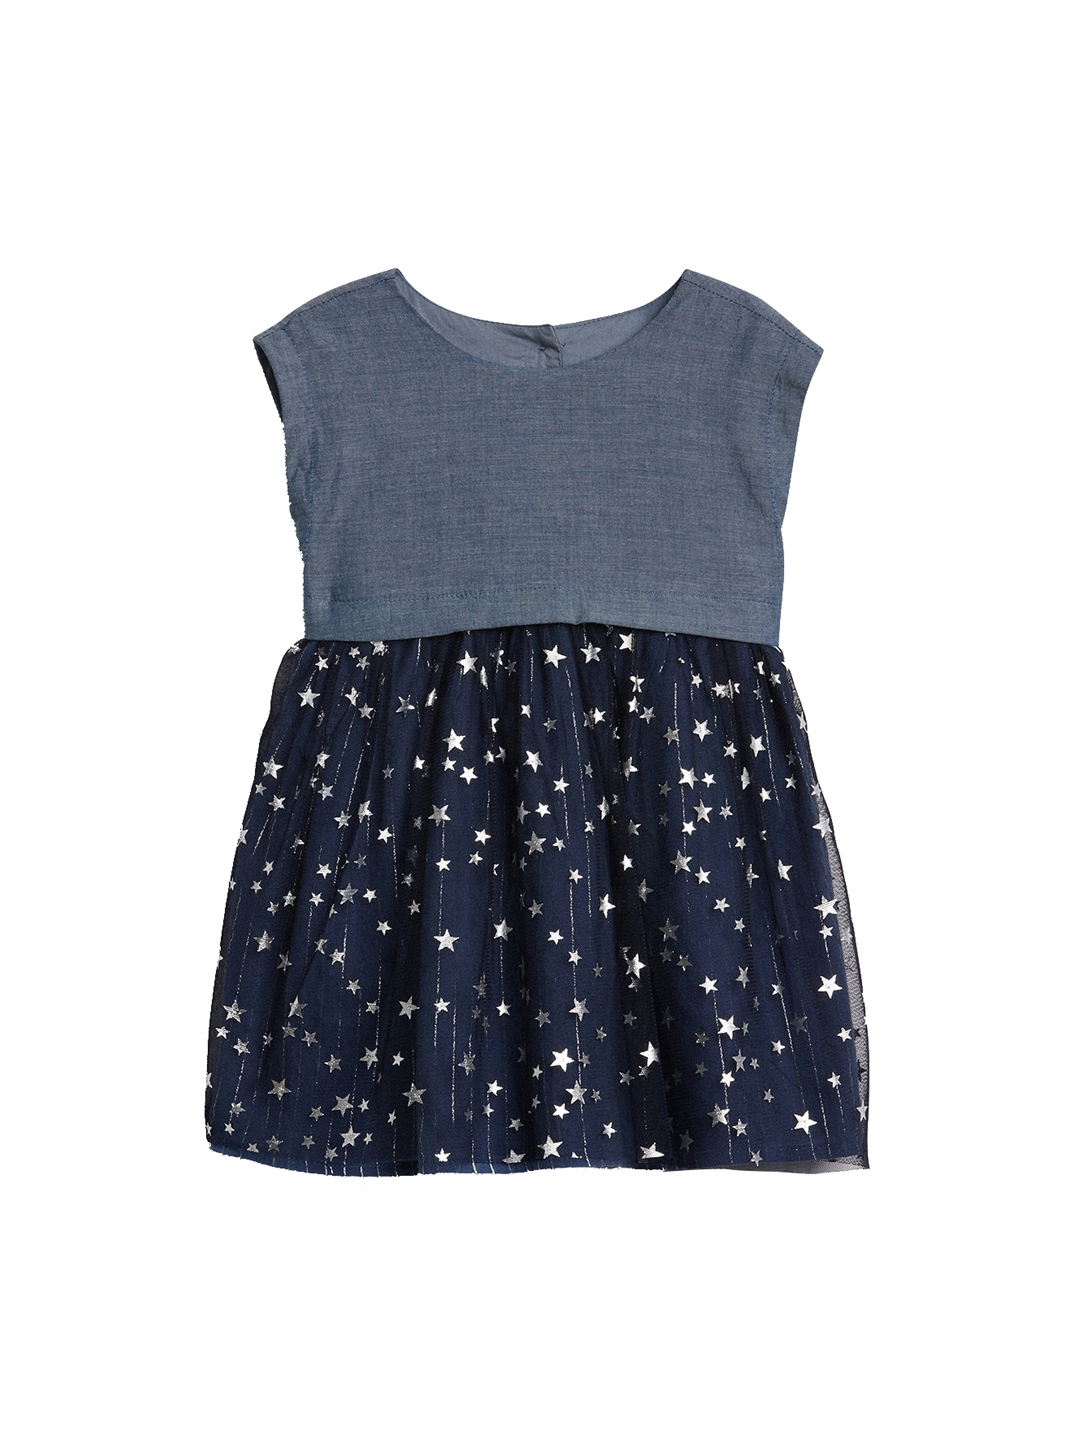 d868223b5bee Buy GAP Blue Baby Chambray Star Mix Fabric Dress - Dresses for Girls ...